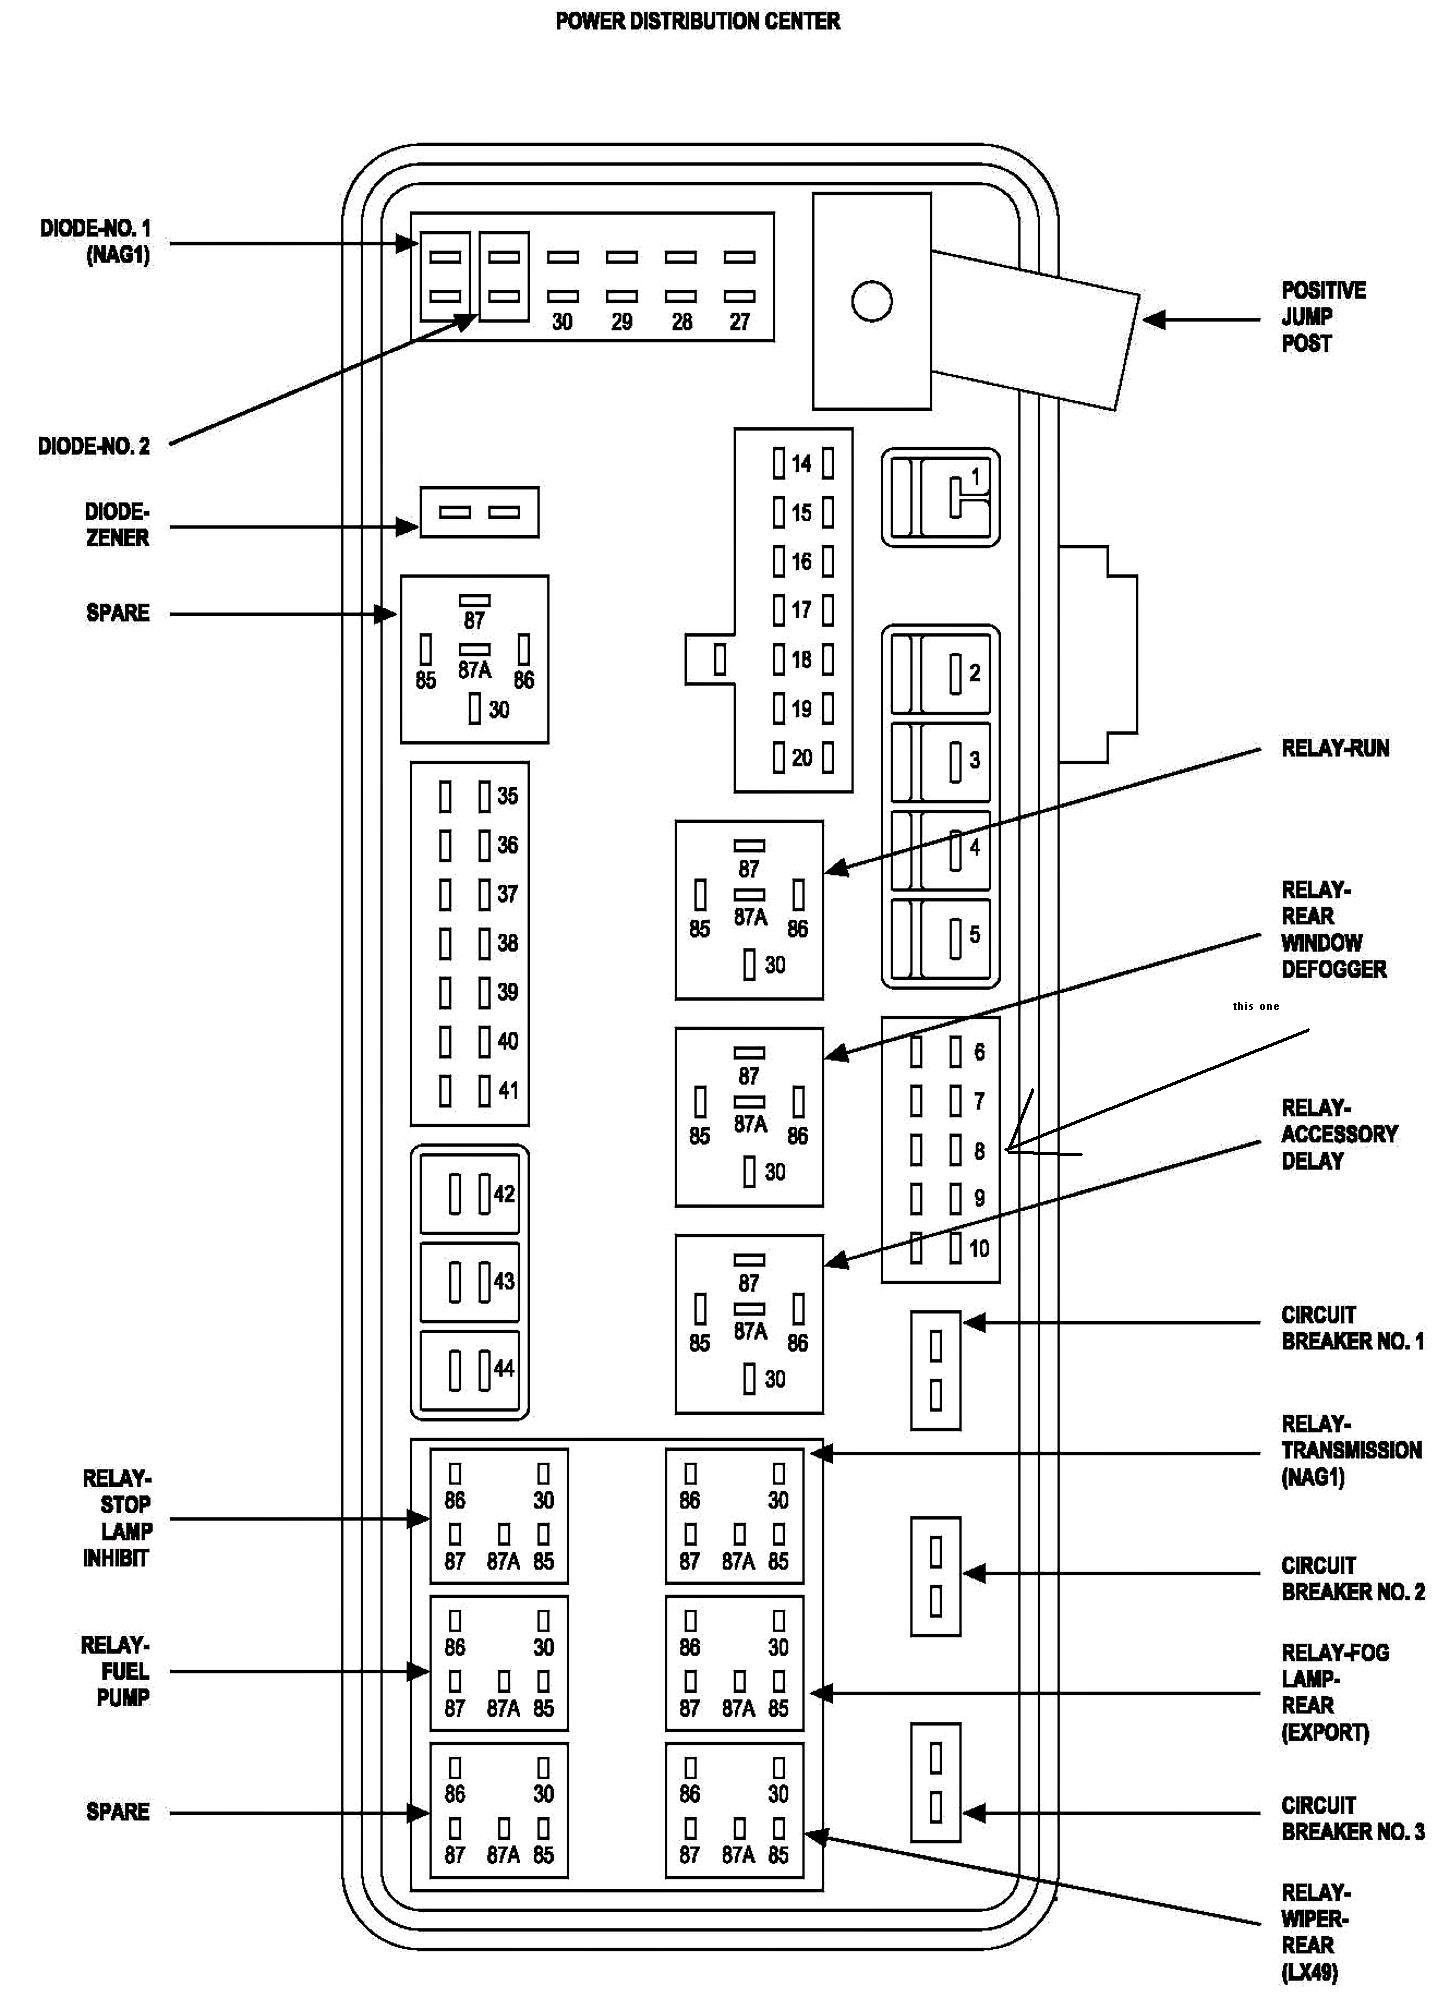 2012 Dodge Ram 1500 Stereo Wiring Diagram from detoxicrecenze.com